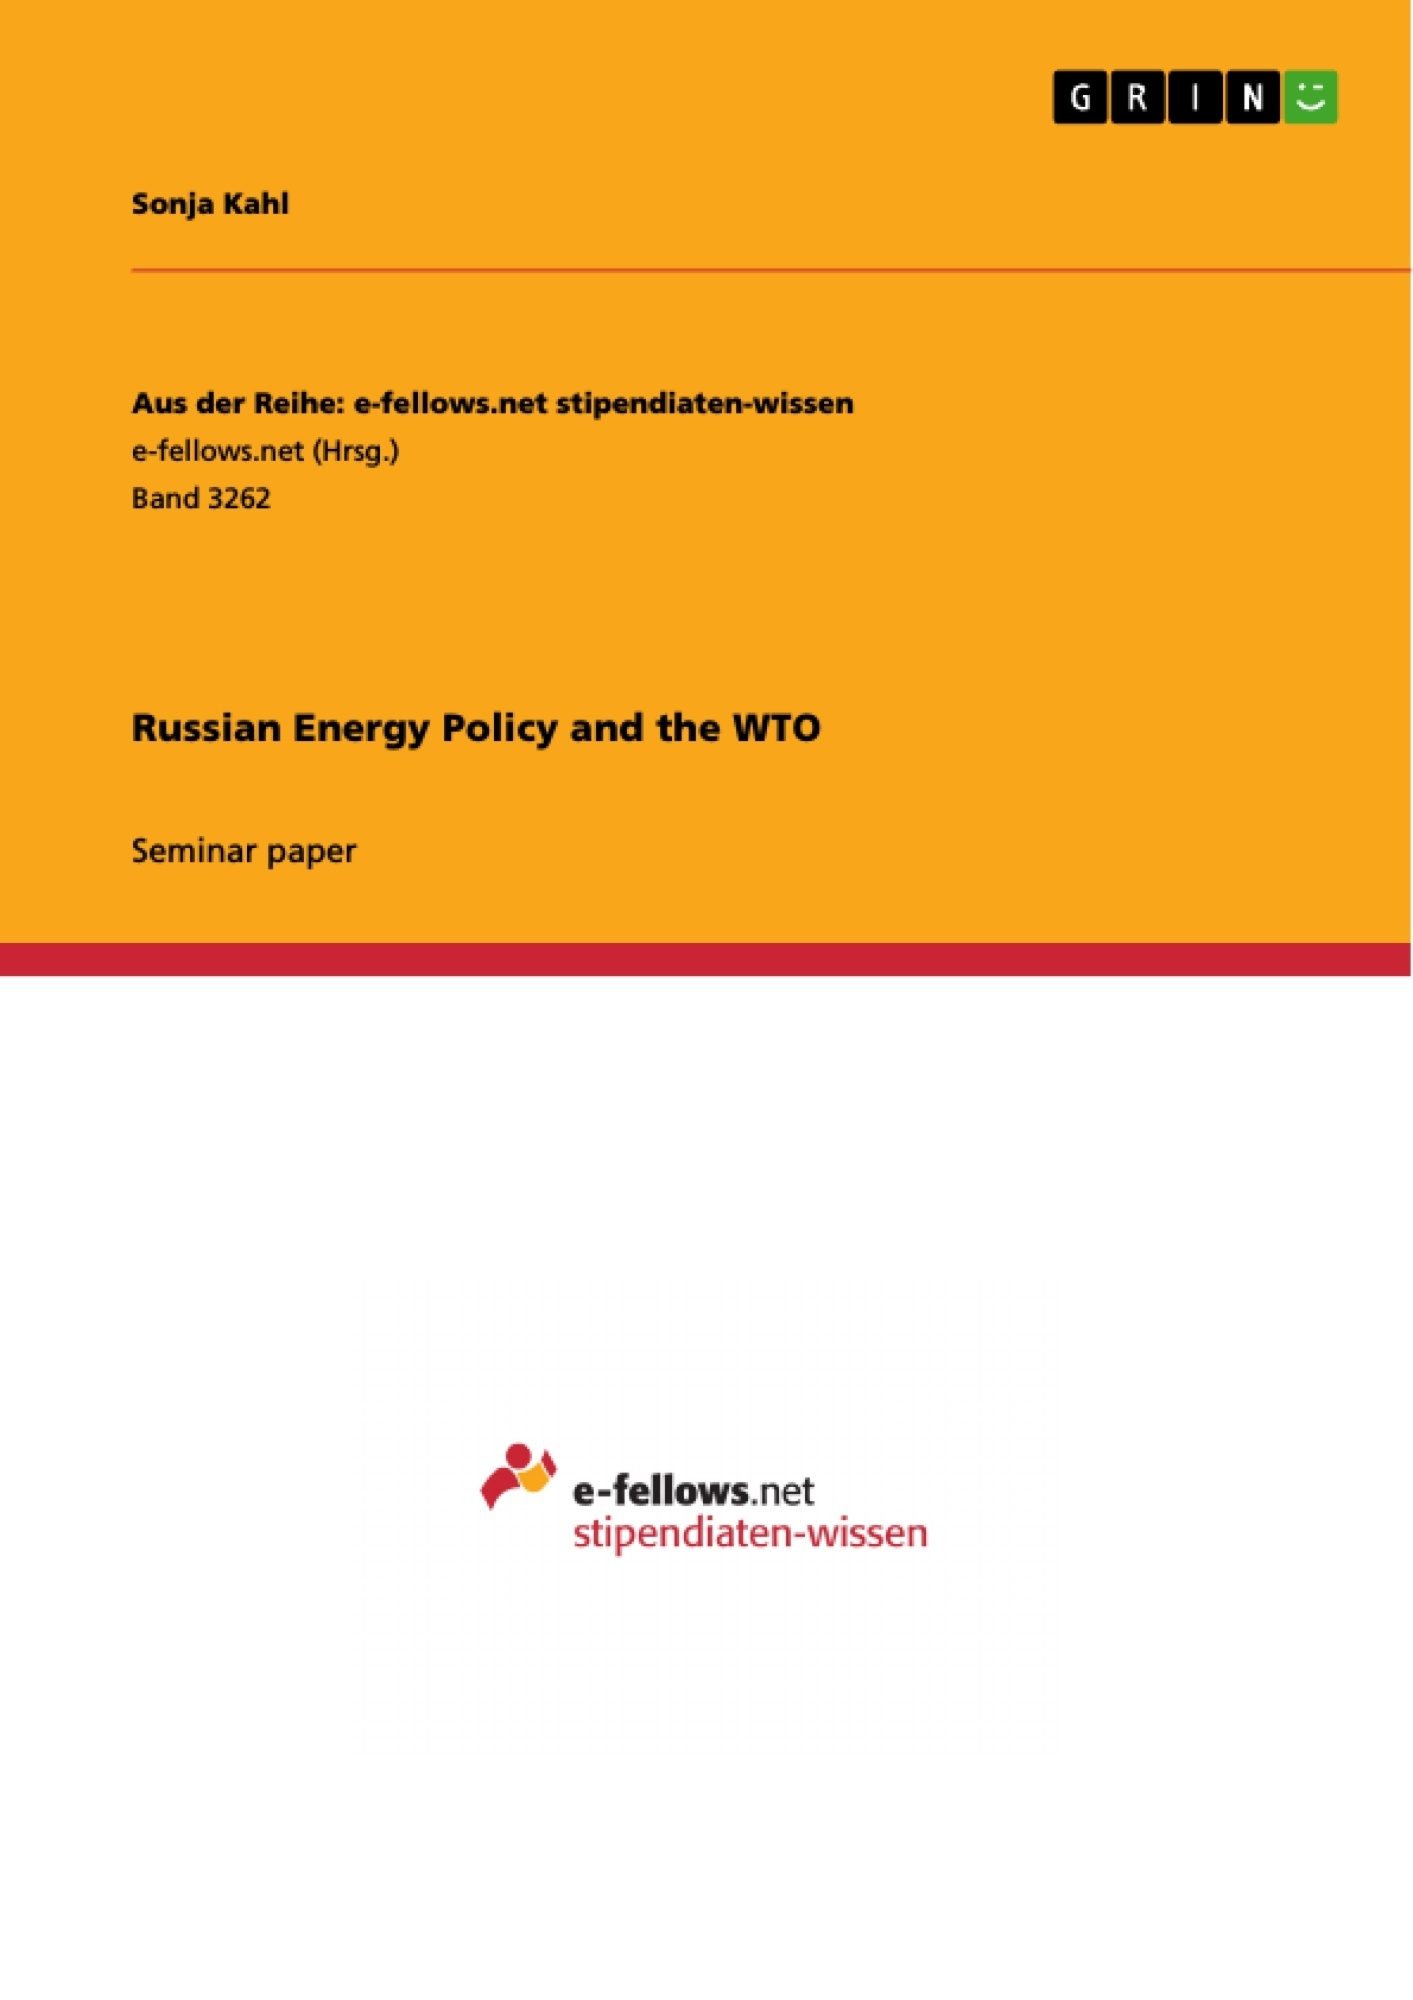 Title: Russian Energy Policy and the WTO